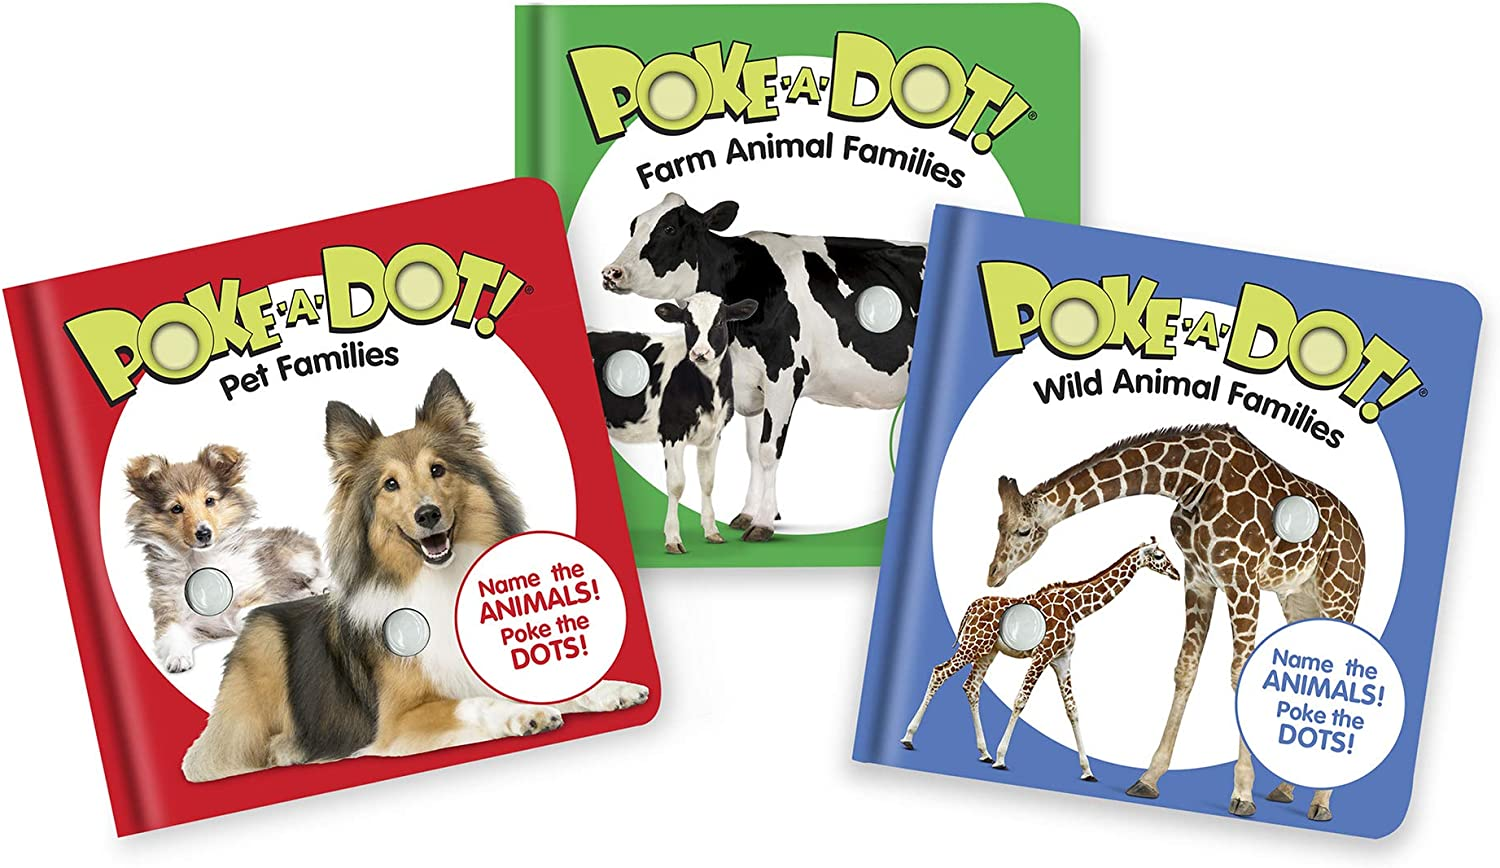 Melissa & Doug Children's Books 3-Pack - Poke-a-Dot Animal Families